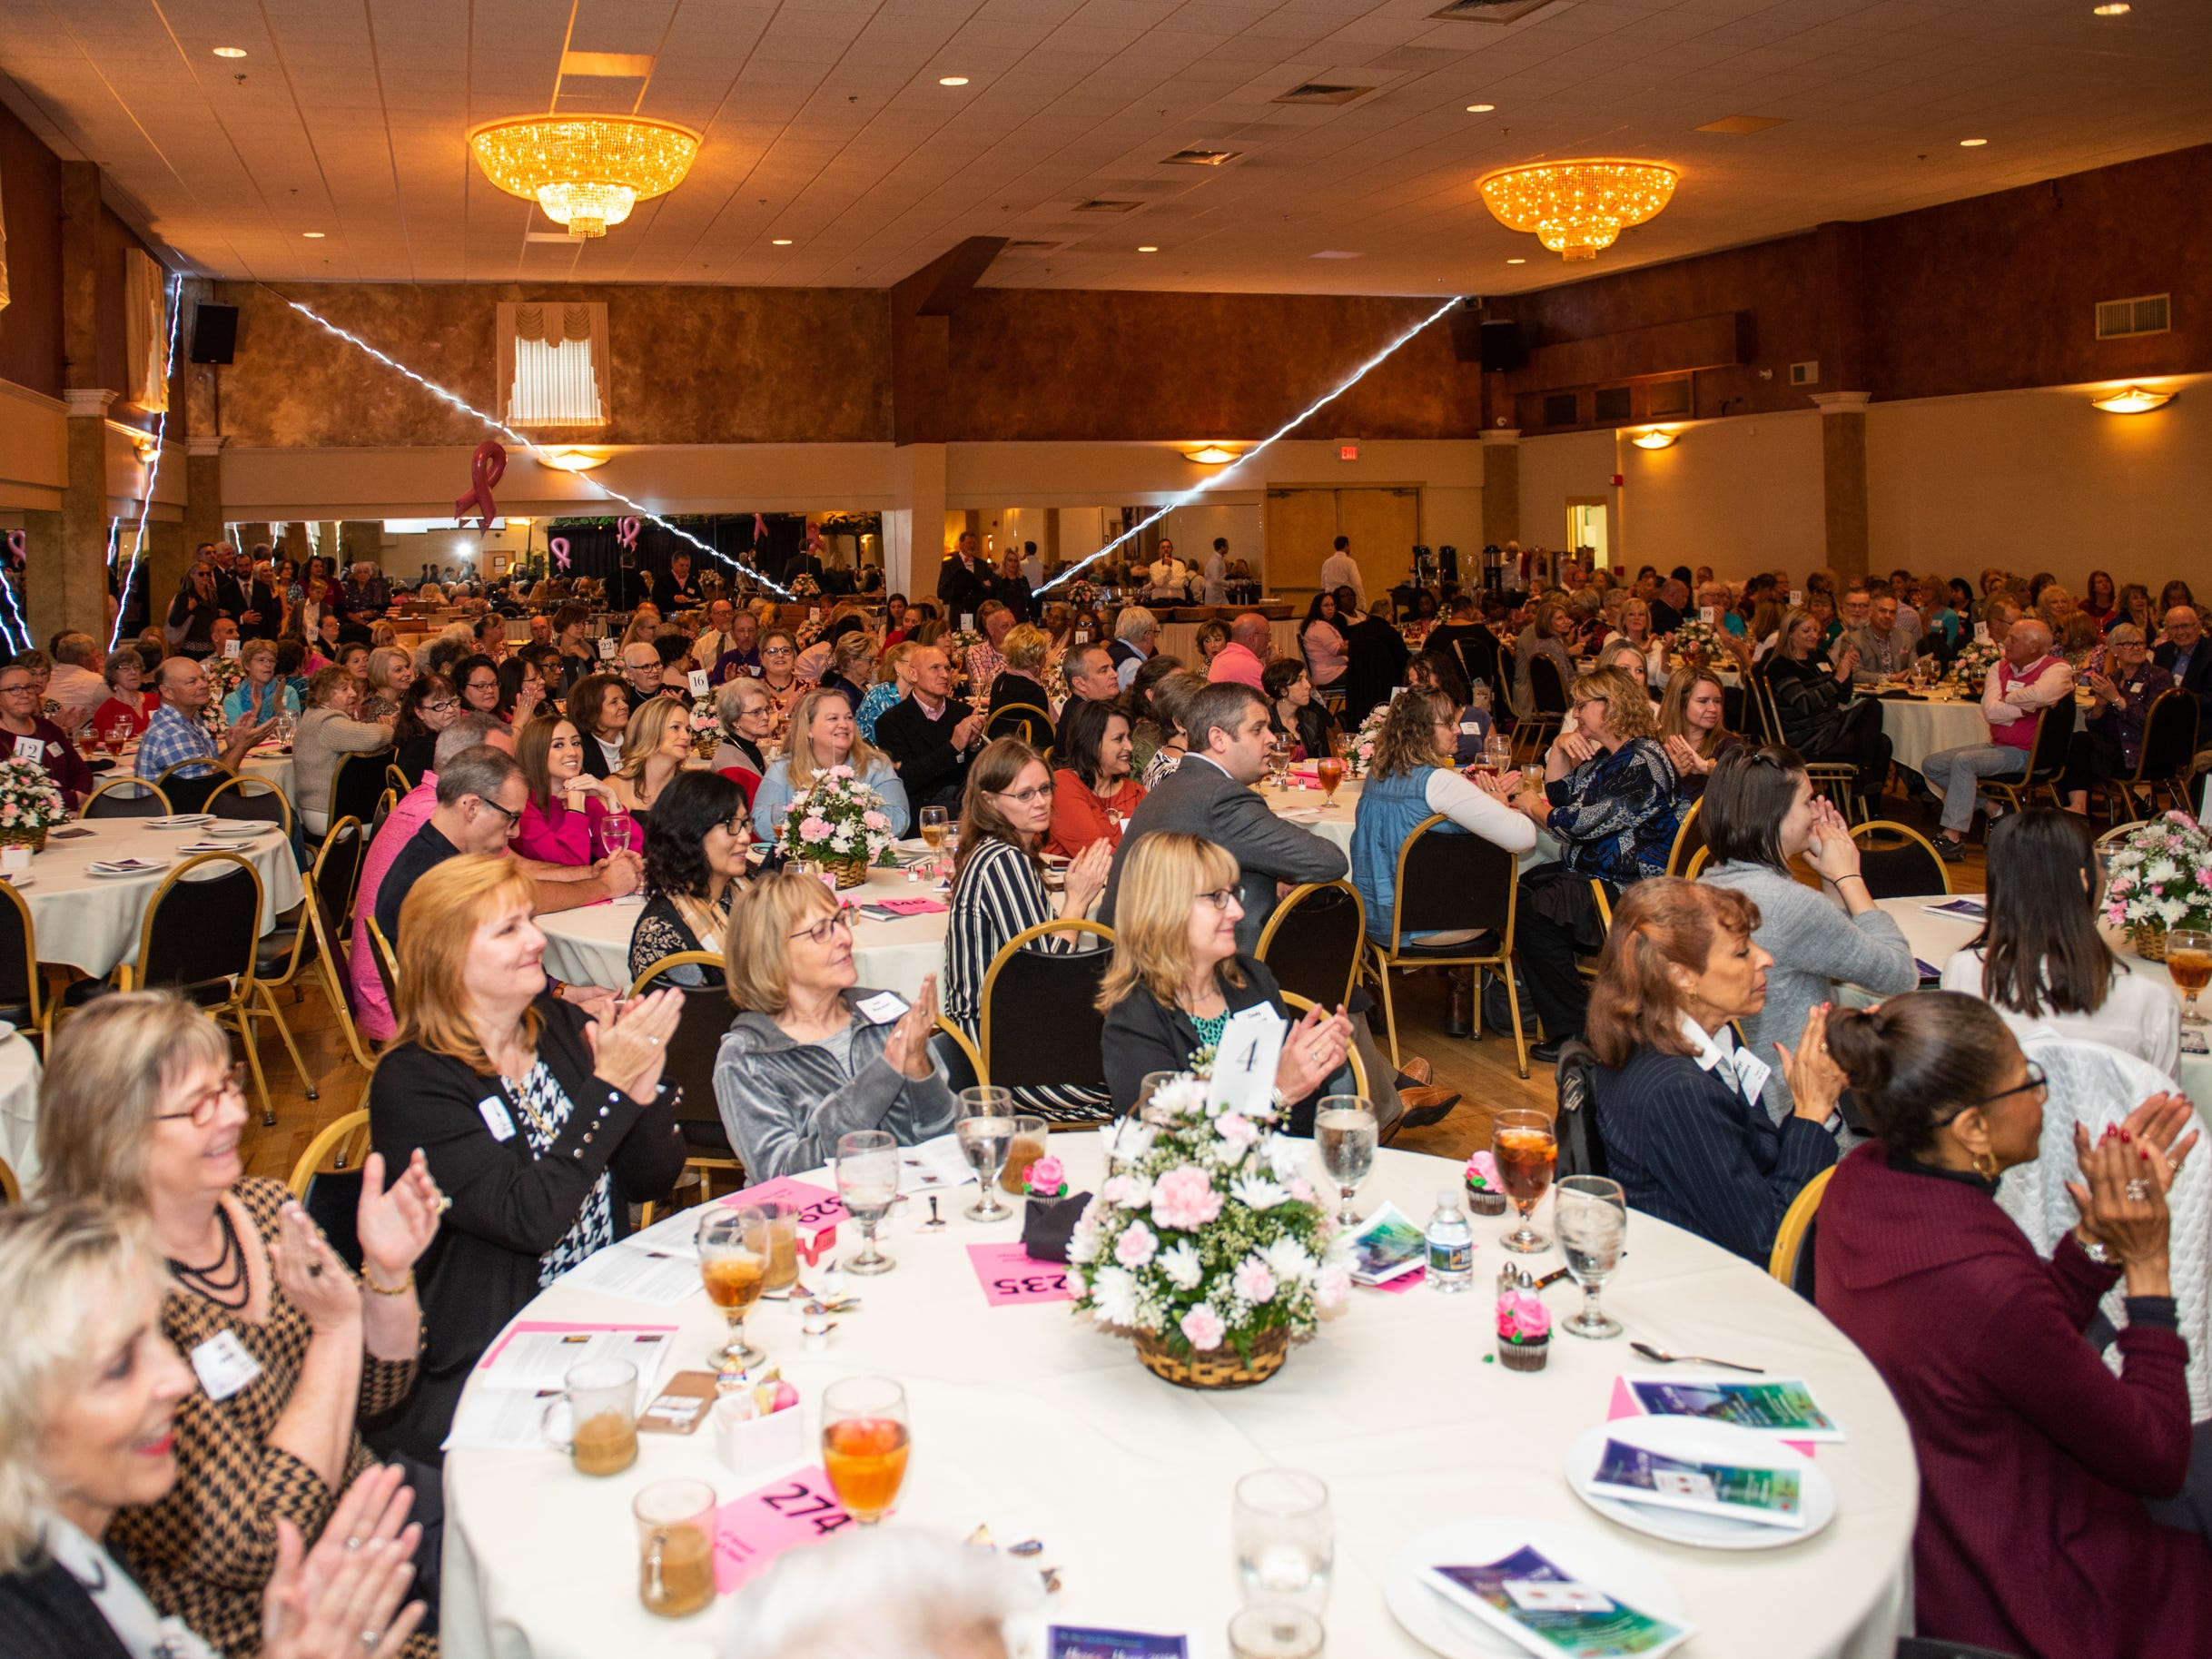 The annual Here's Hope Fashion Show and Luncheon Oct. 20 at the Asheville Event Centre was a fundraiser for the Hope Chest for Women, which offers financial assistance to women in WNC who are undergoing treatment for breast or gynecological cancers.